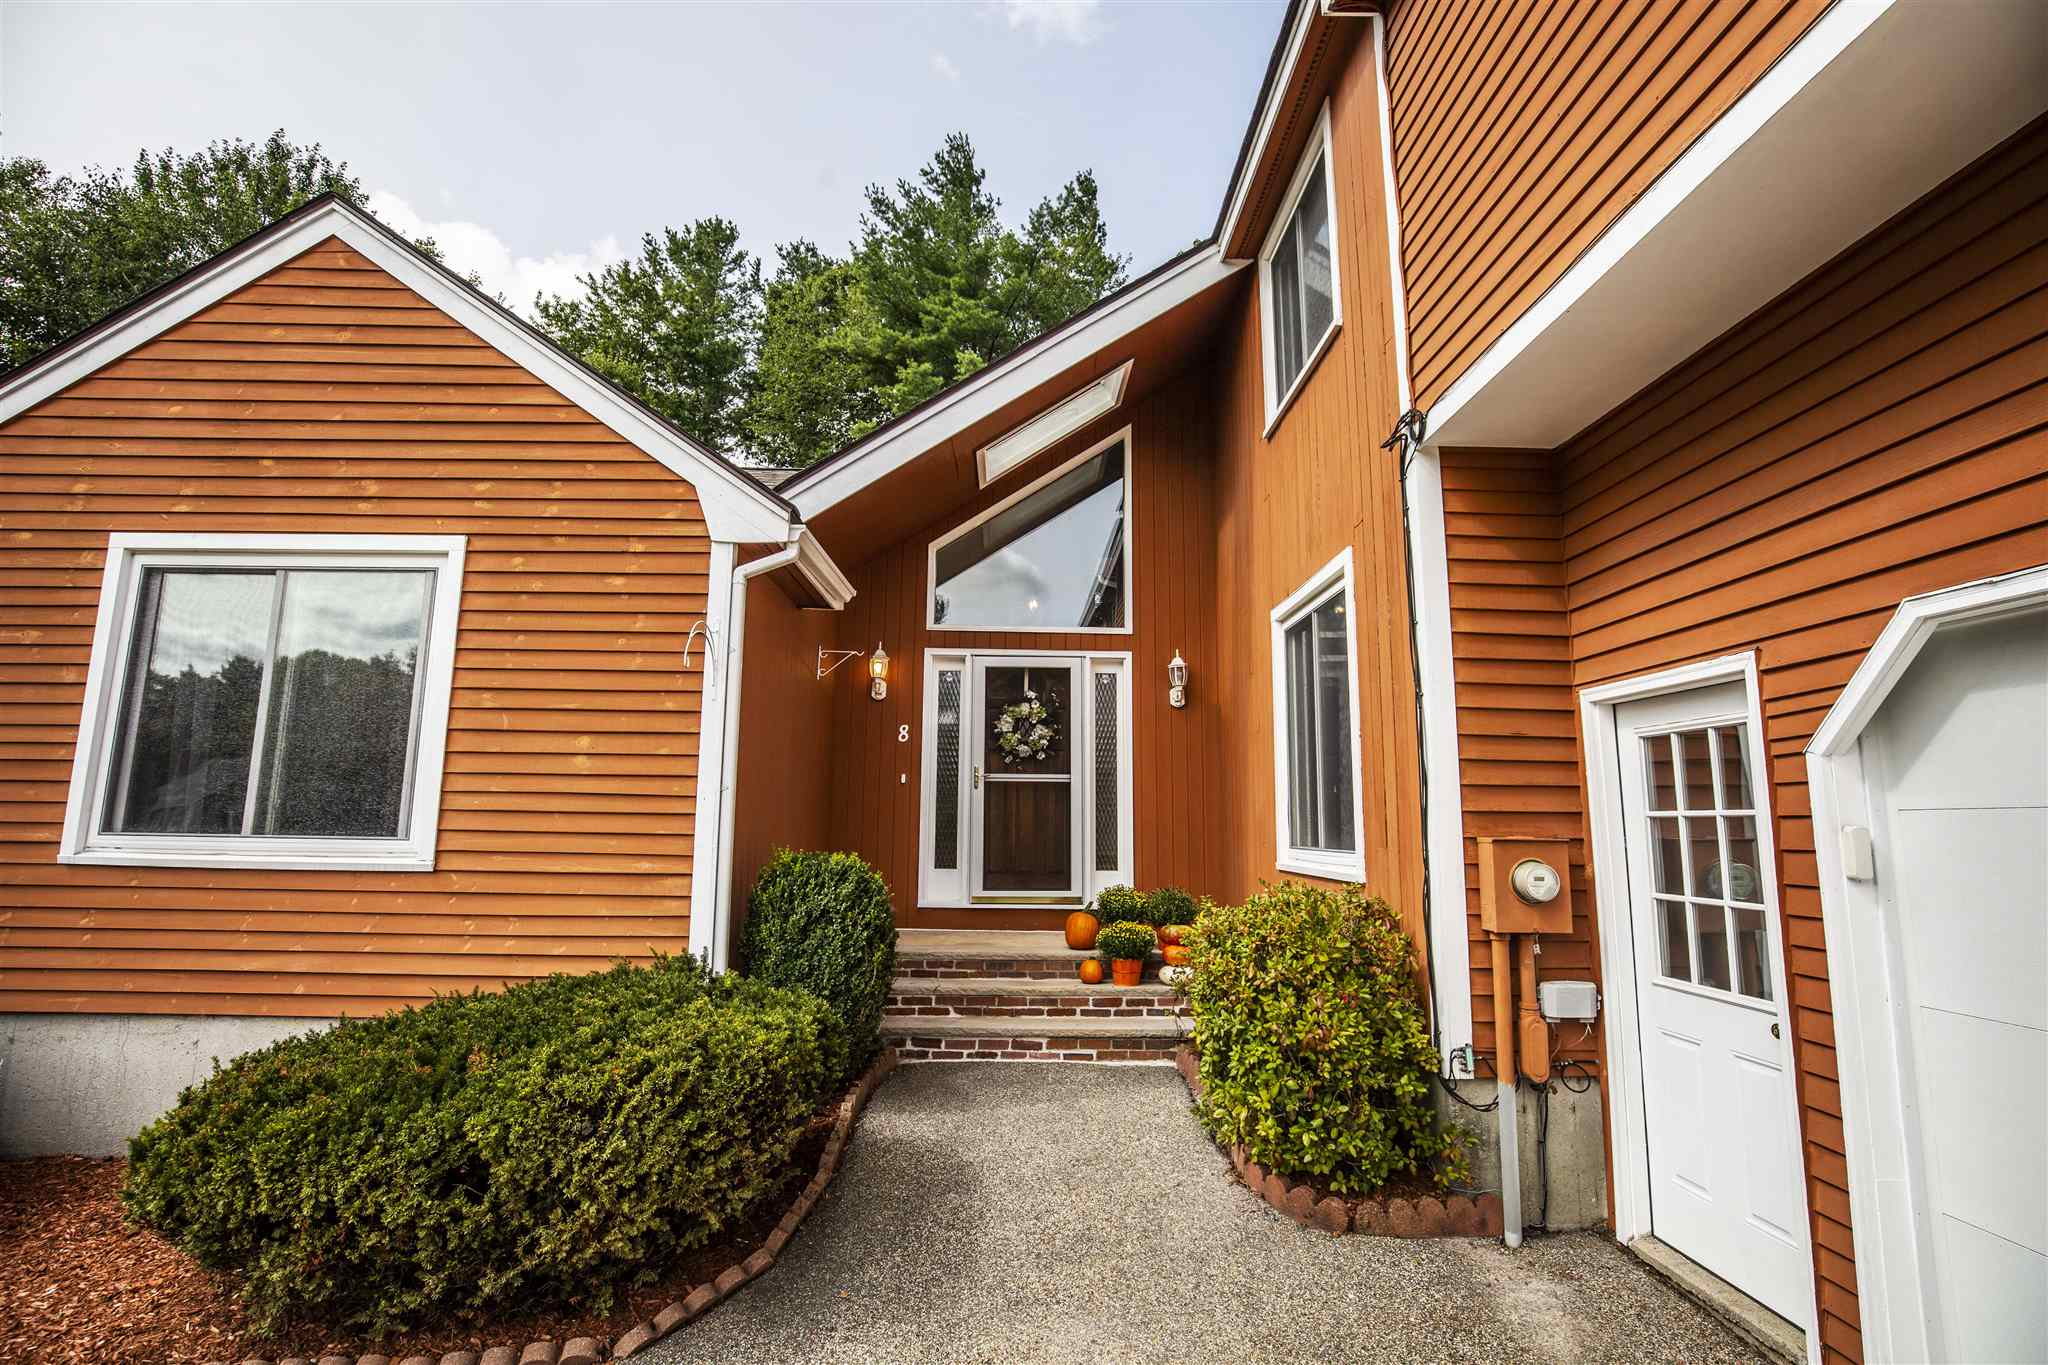 MLS 4828961: 8 Moulton Drive, Londonderry NH